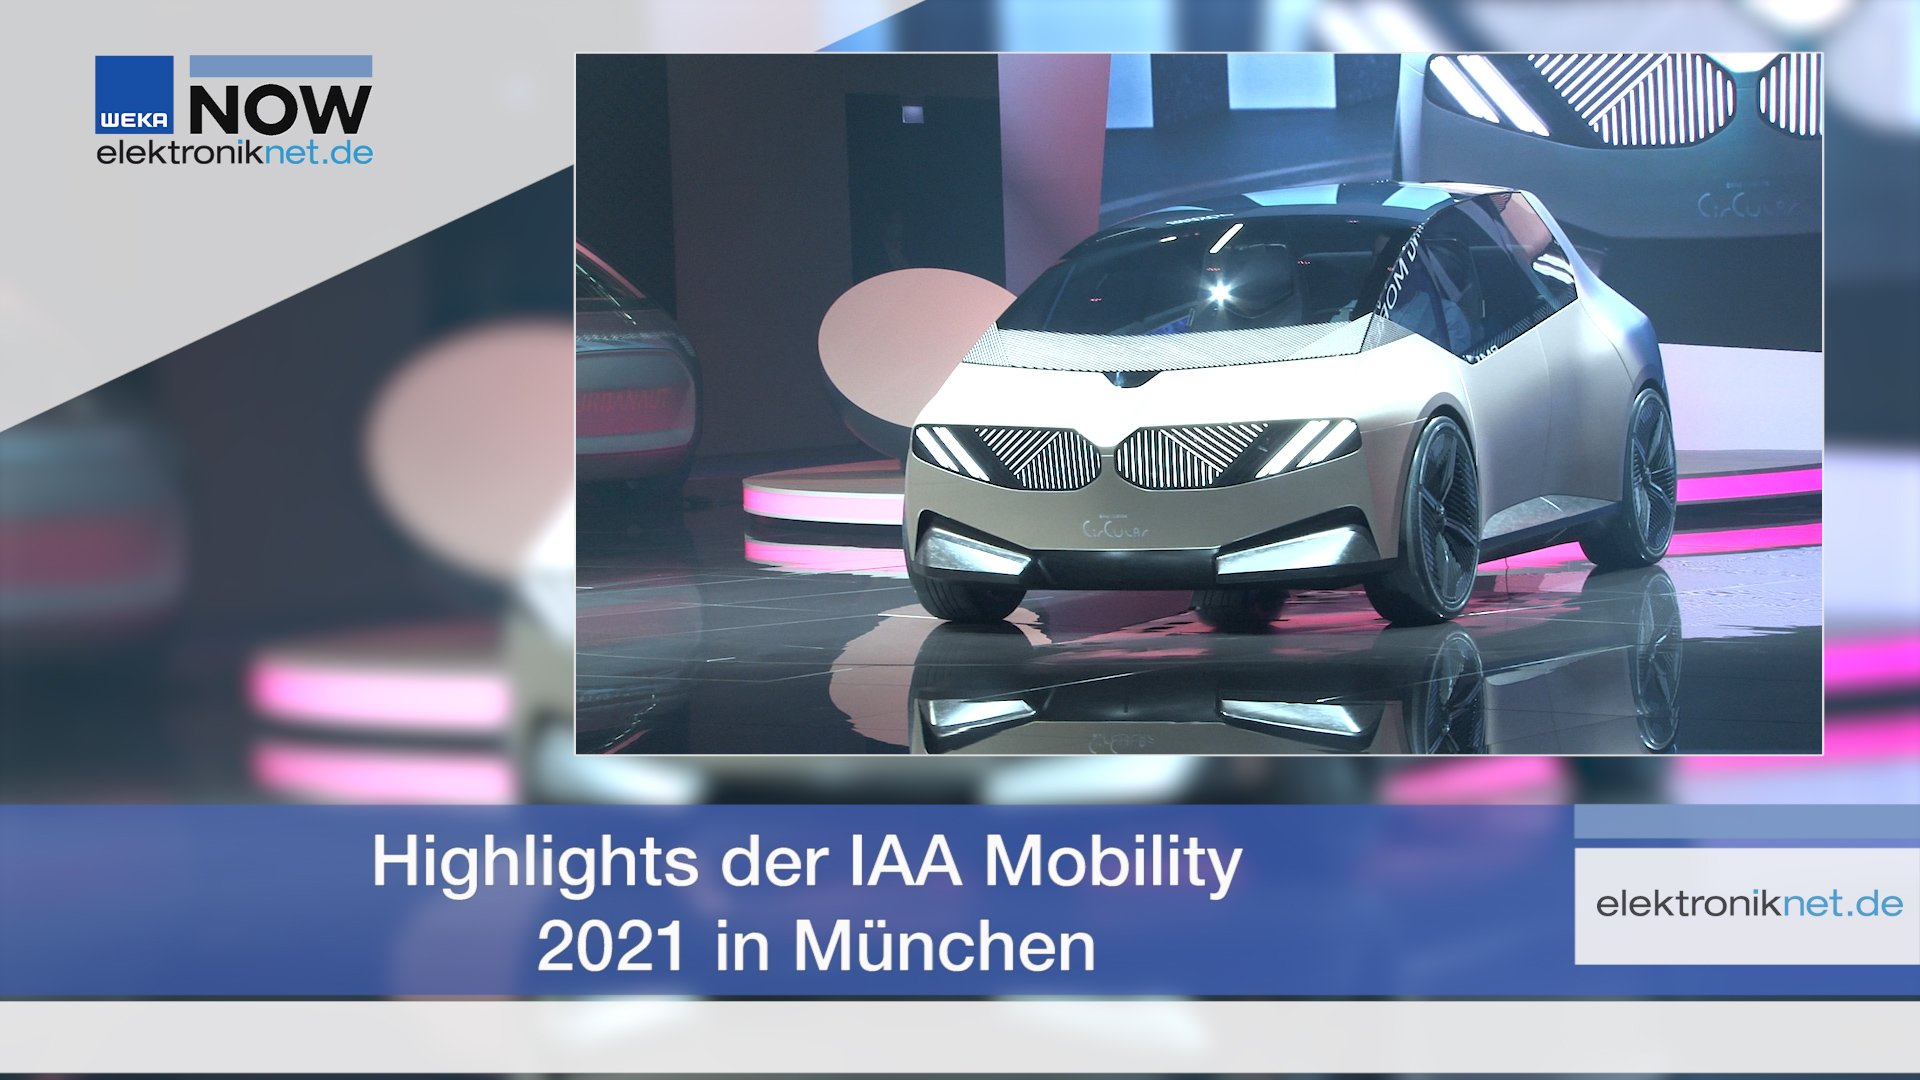 Highlights der IAA Mobility 2021 in München